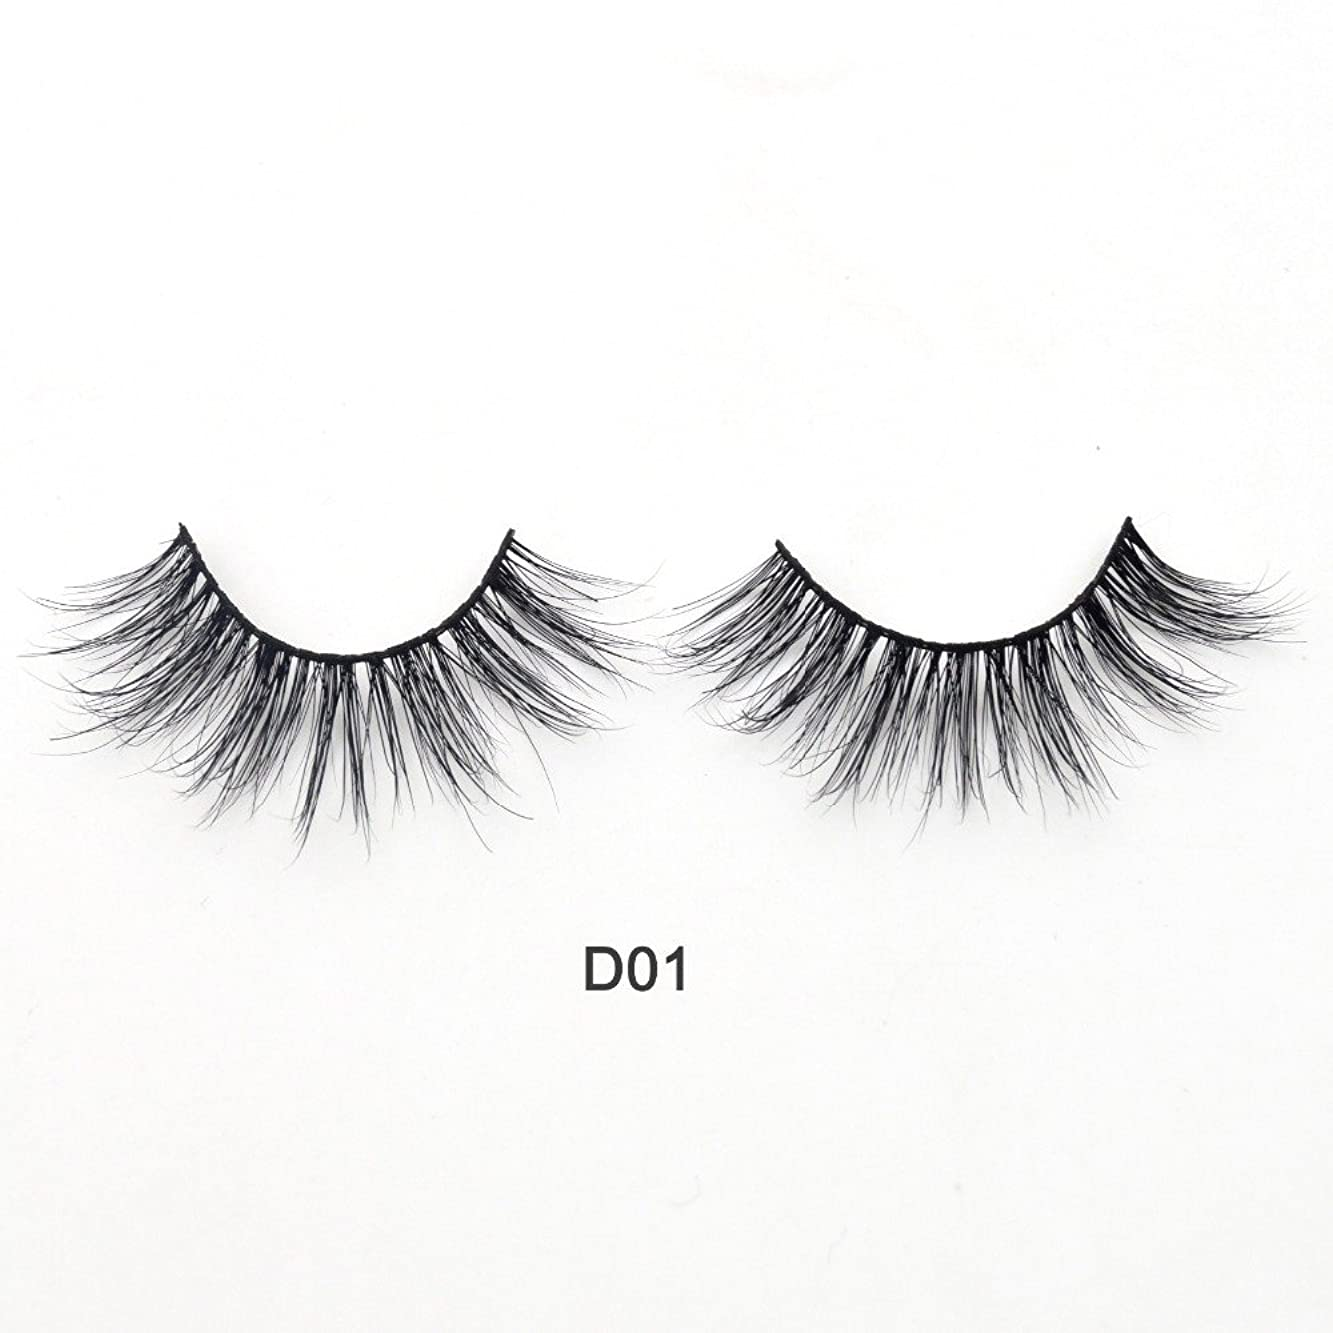 日記怖がらせる土器(D01) Visofree Eyelashes 3D Mink Lashes Luxury Hand Made Mink Eyelashes Medium Volume Cruelty Free Mink False Eyelashes Upper Lashes